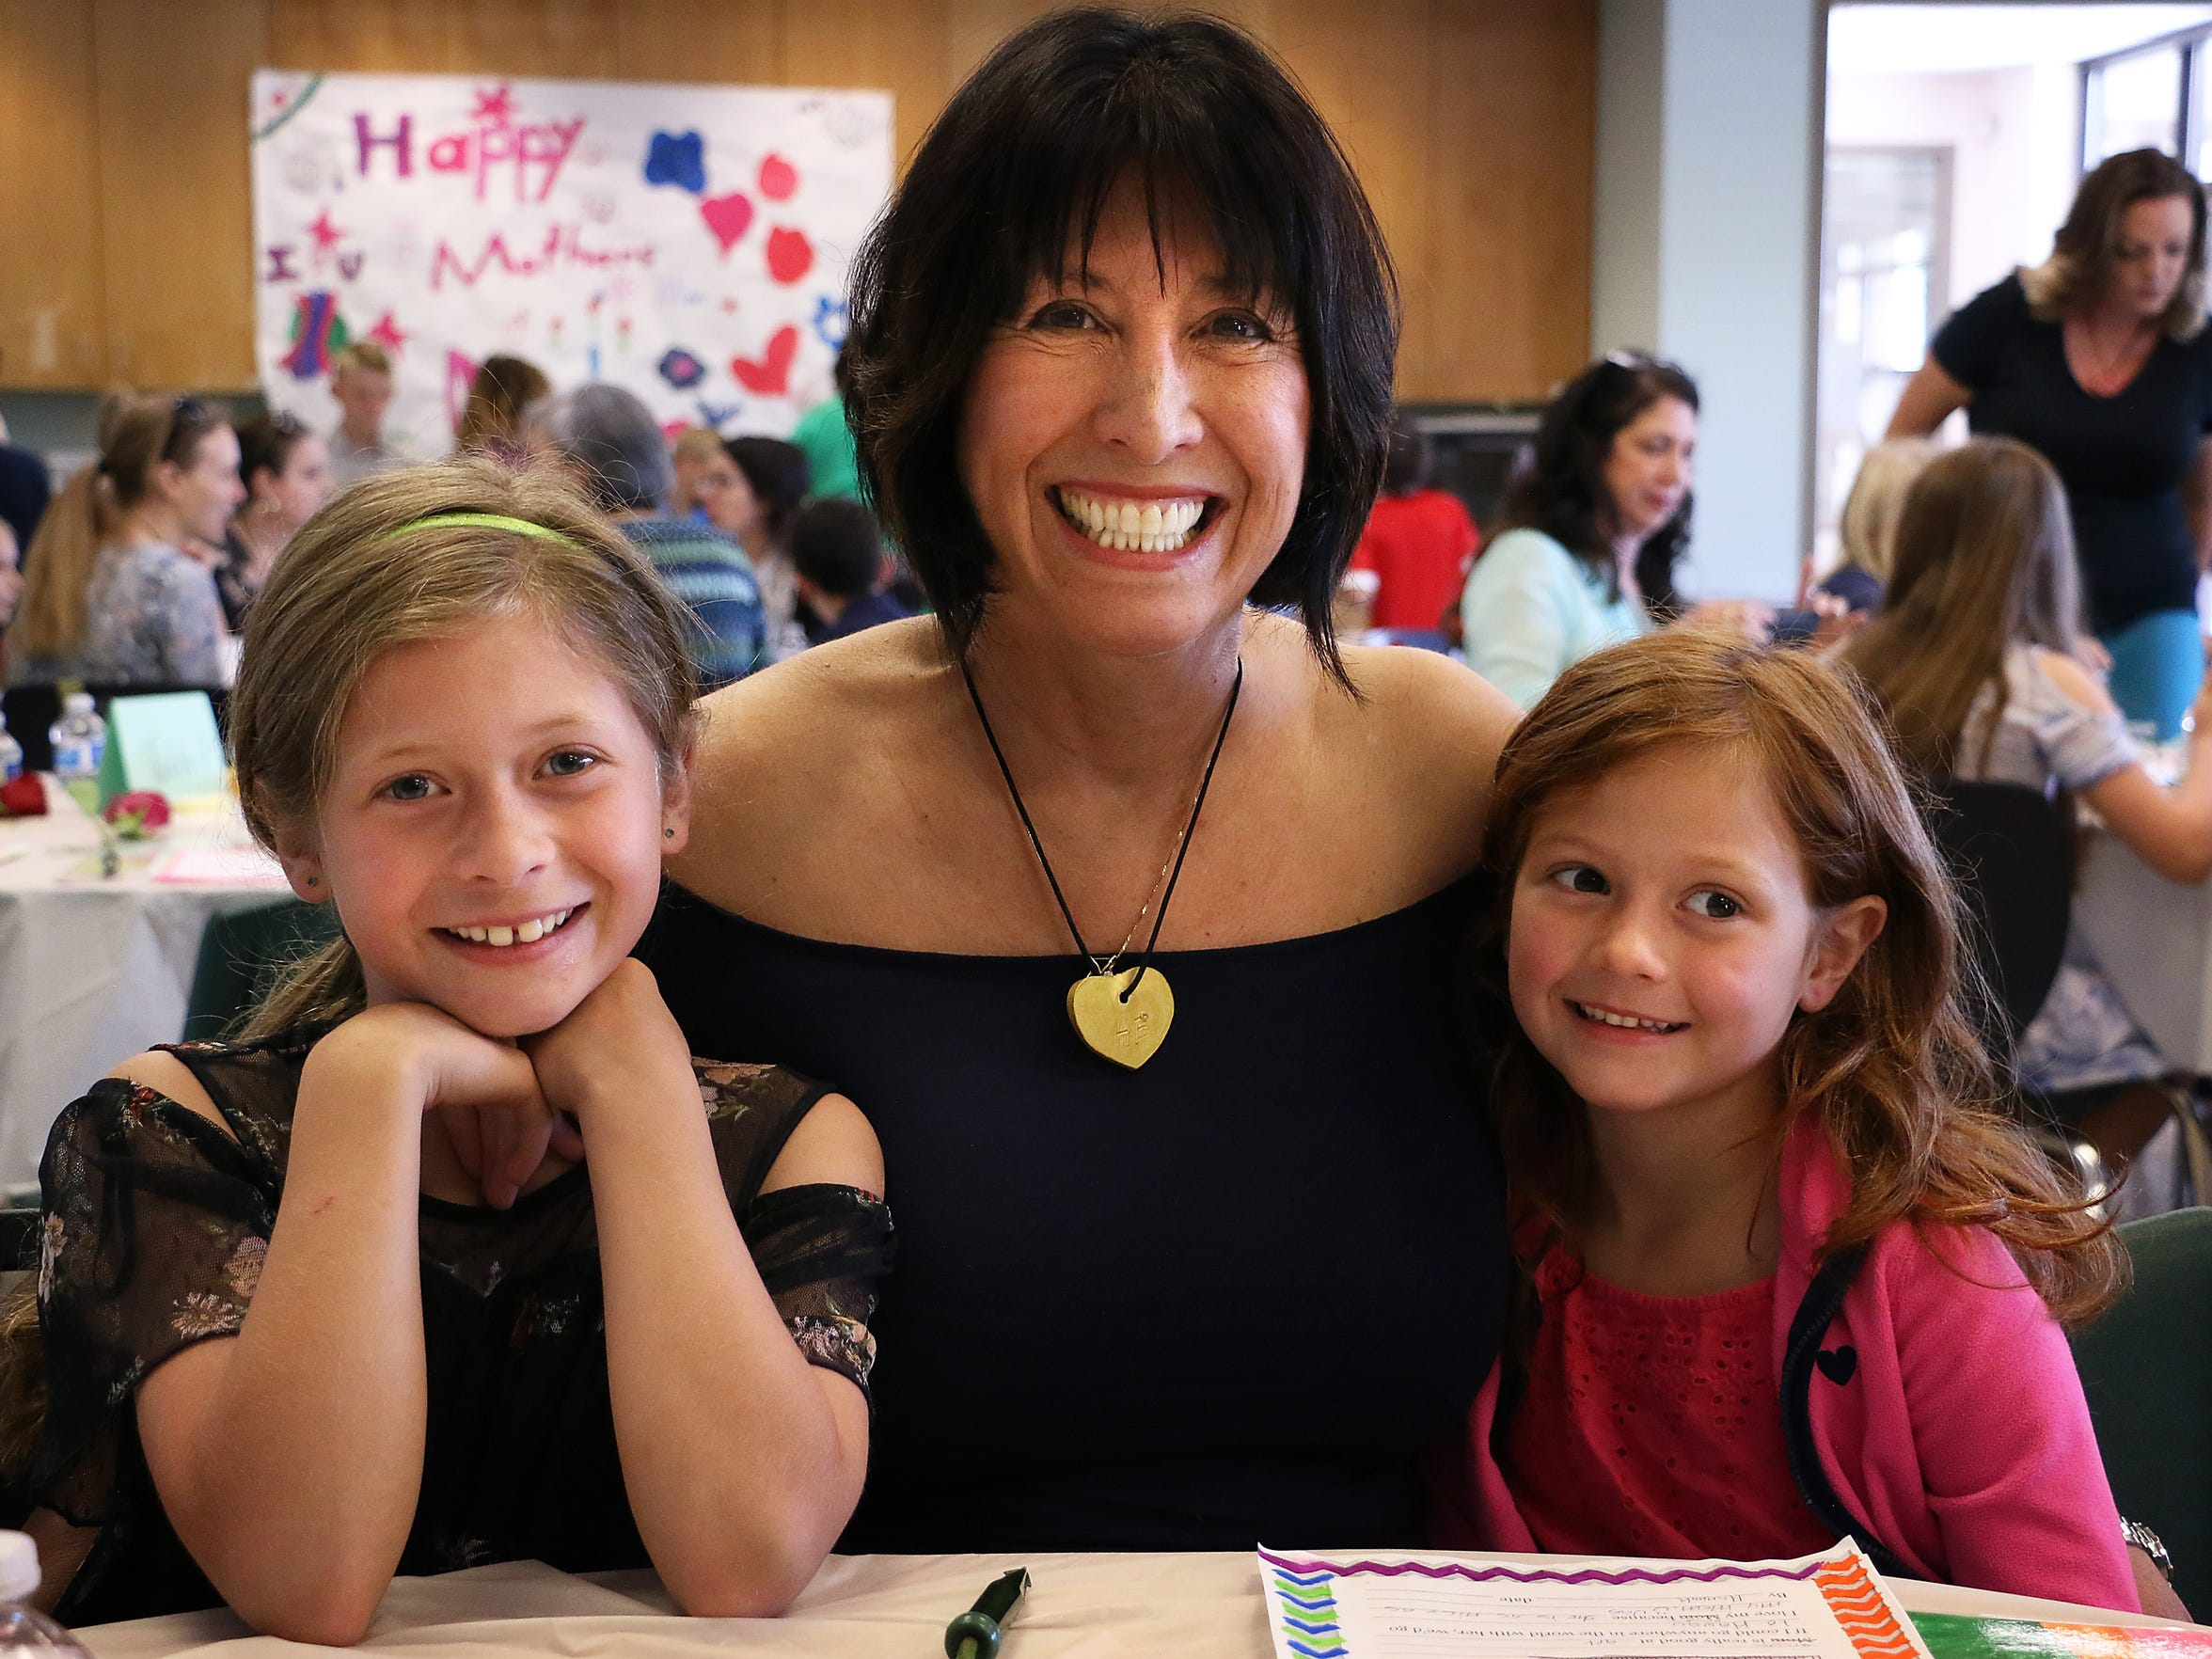 Cathy Taylor poses for portrait with her granddaughters Hannah, left, and Holly during a Mother's Day brunch at the Doral Academy in Reno on May 8, 2018. Taylor's daughter, Hannah and Holly's mom, died of cancer this past January.